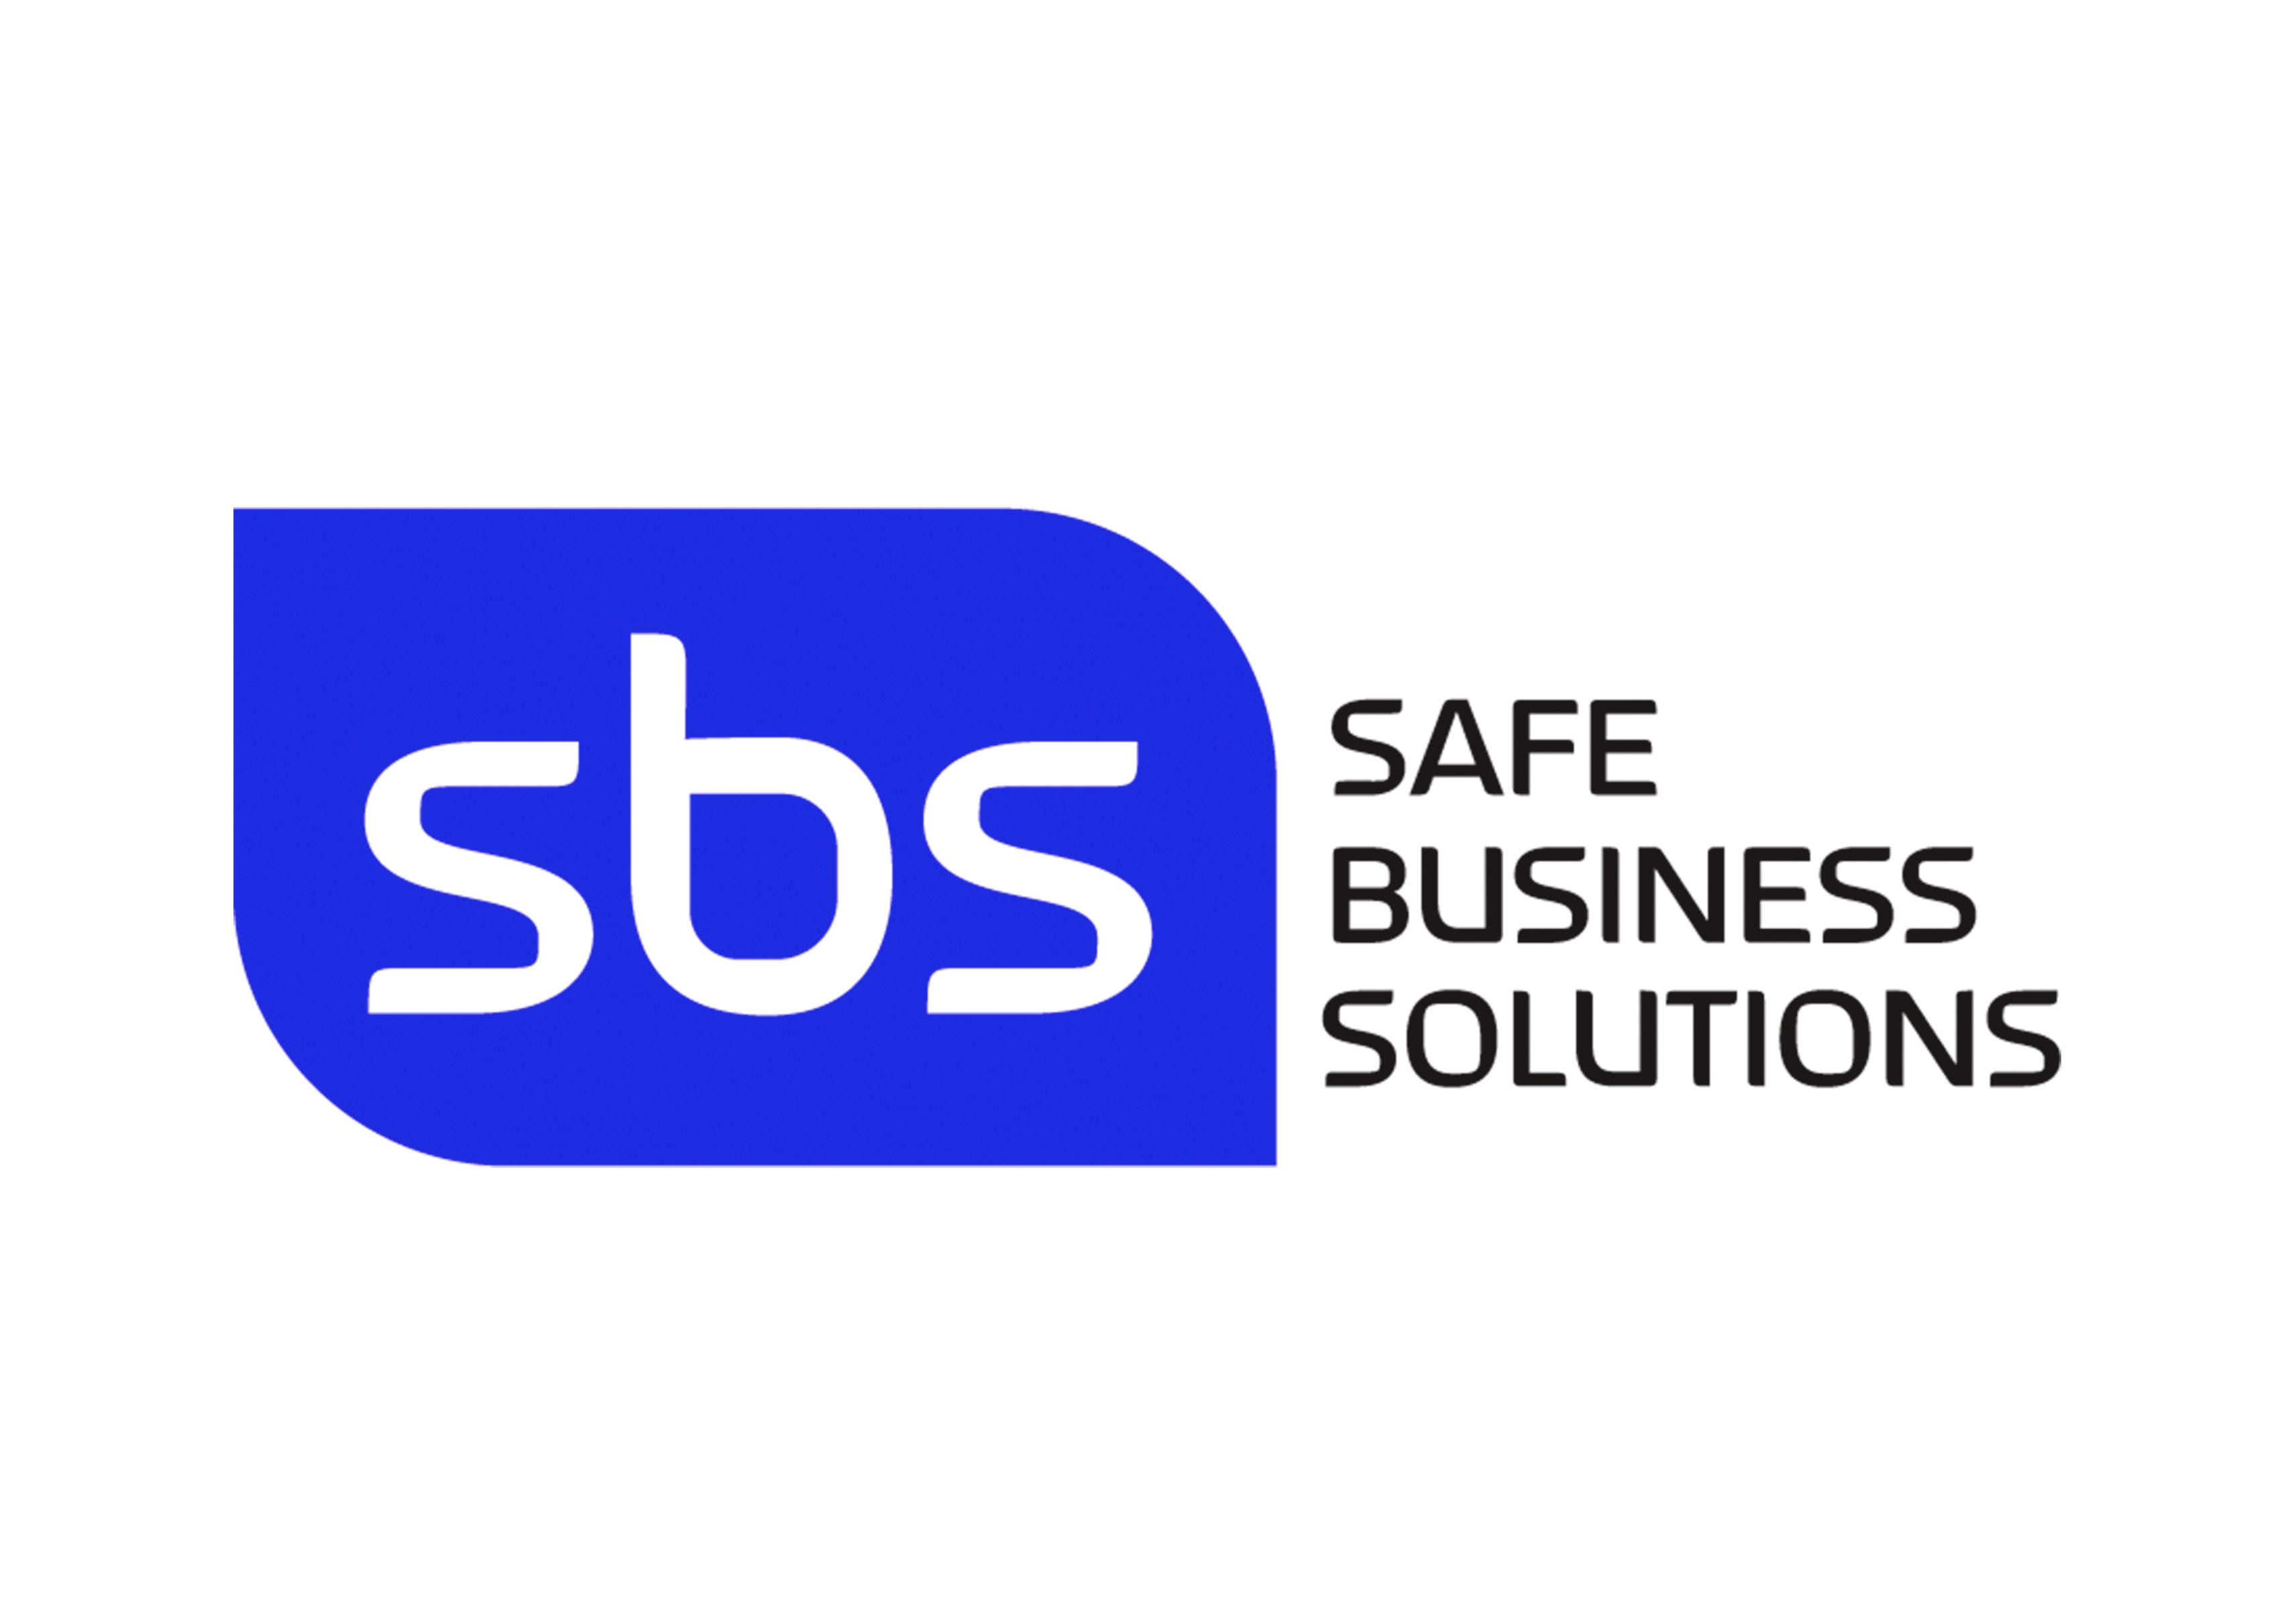 Safe business solutions